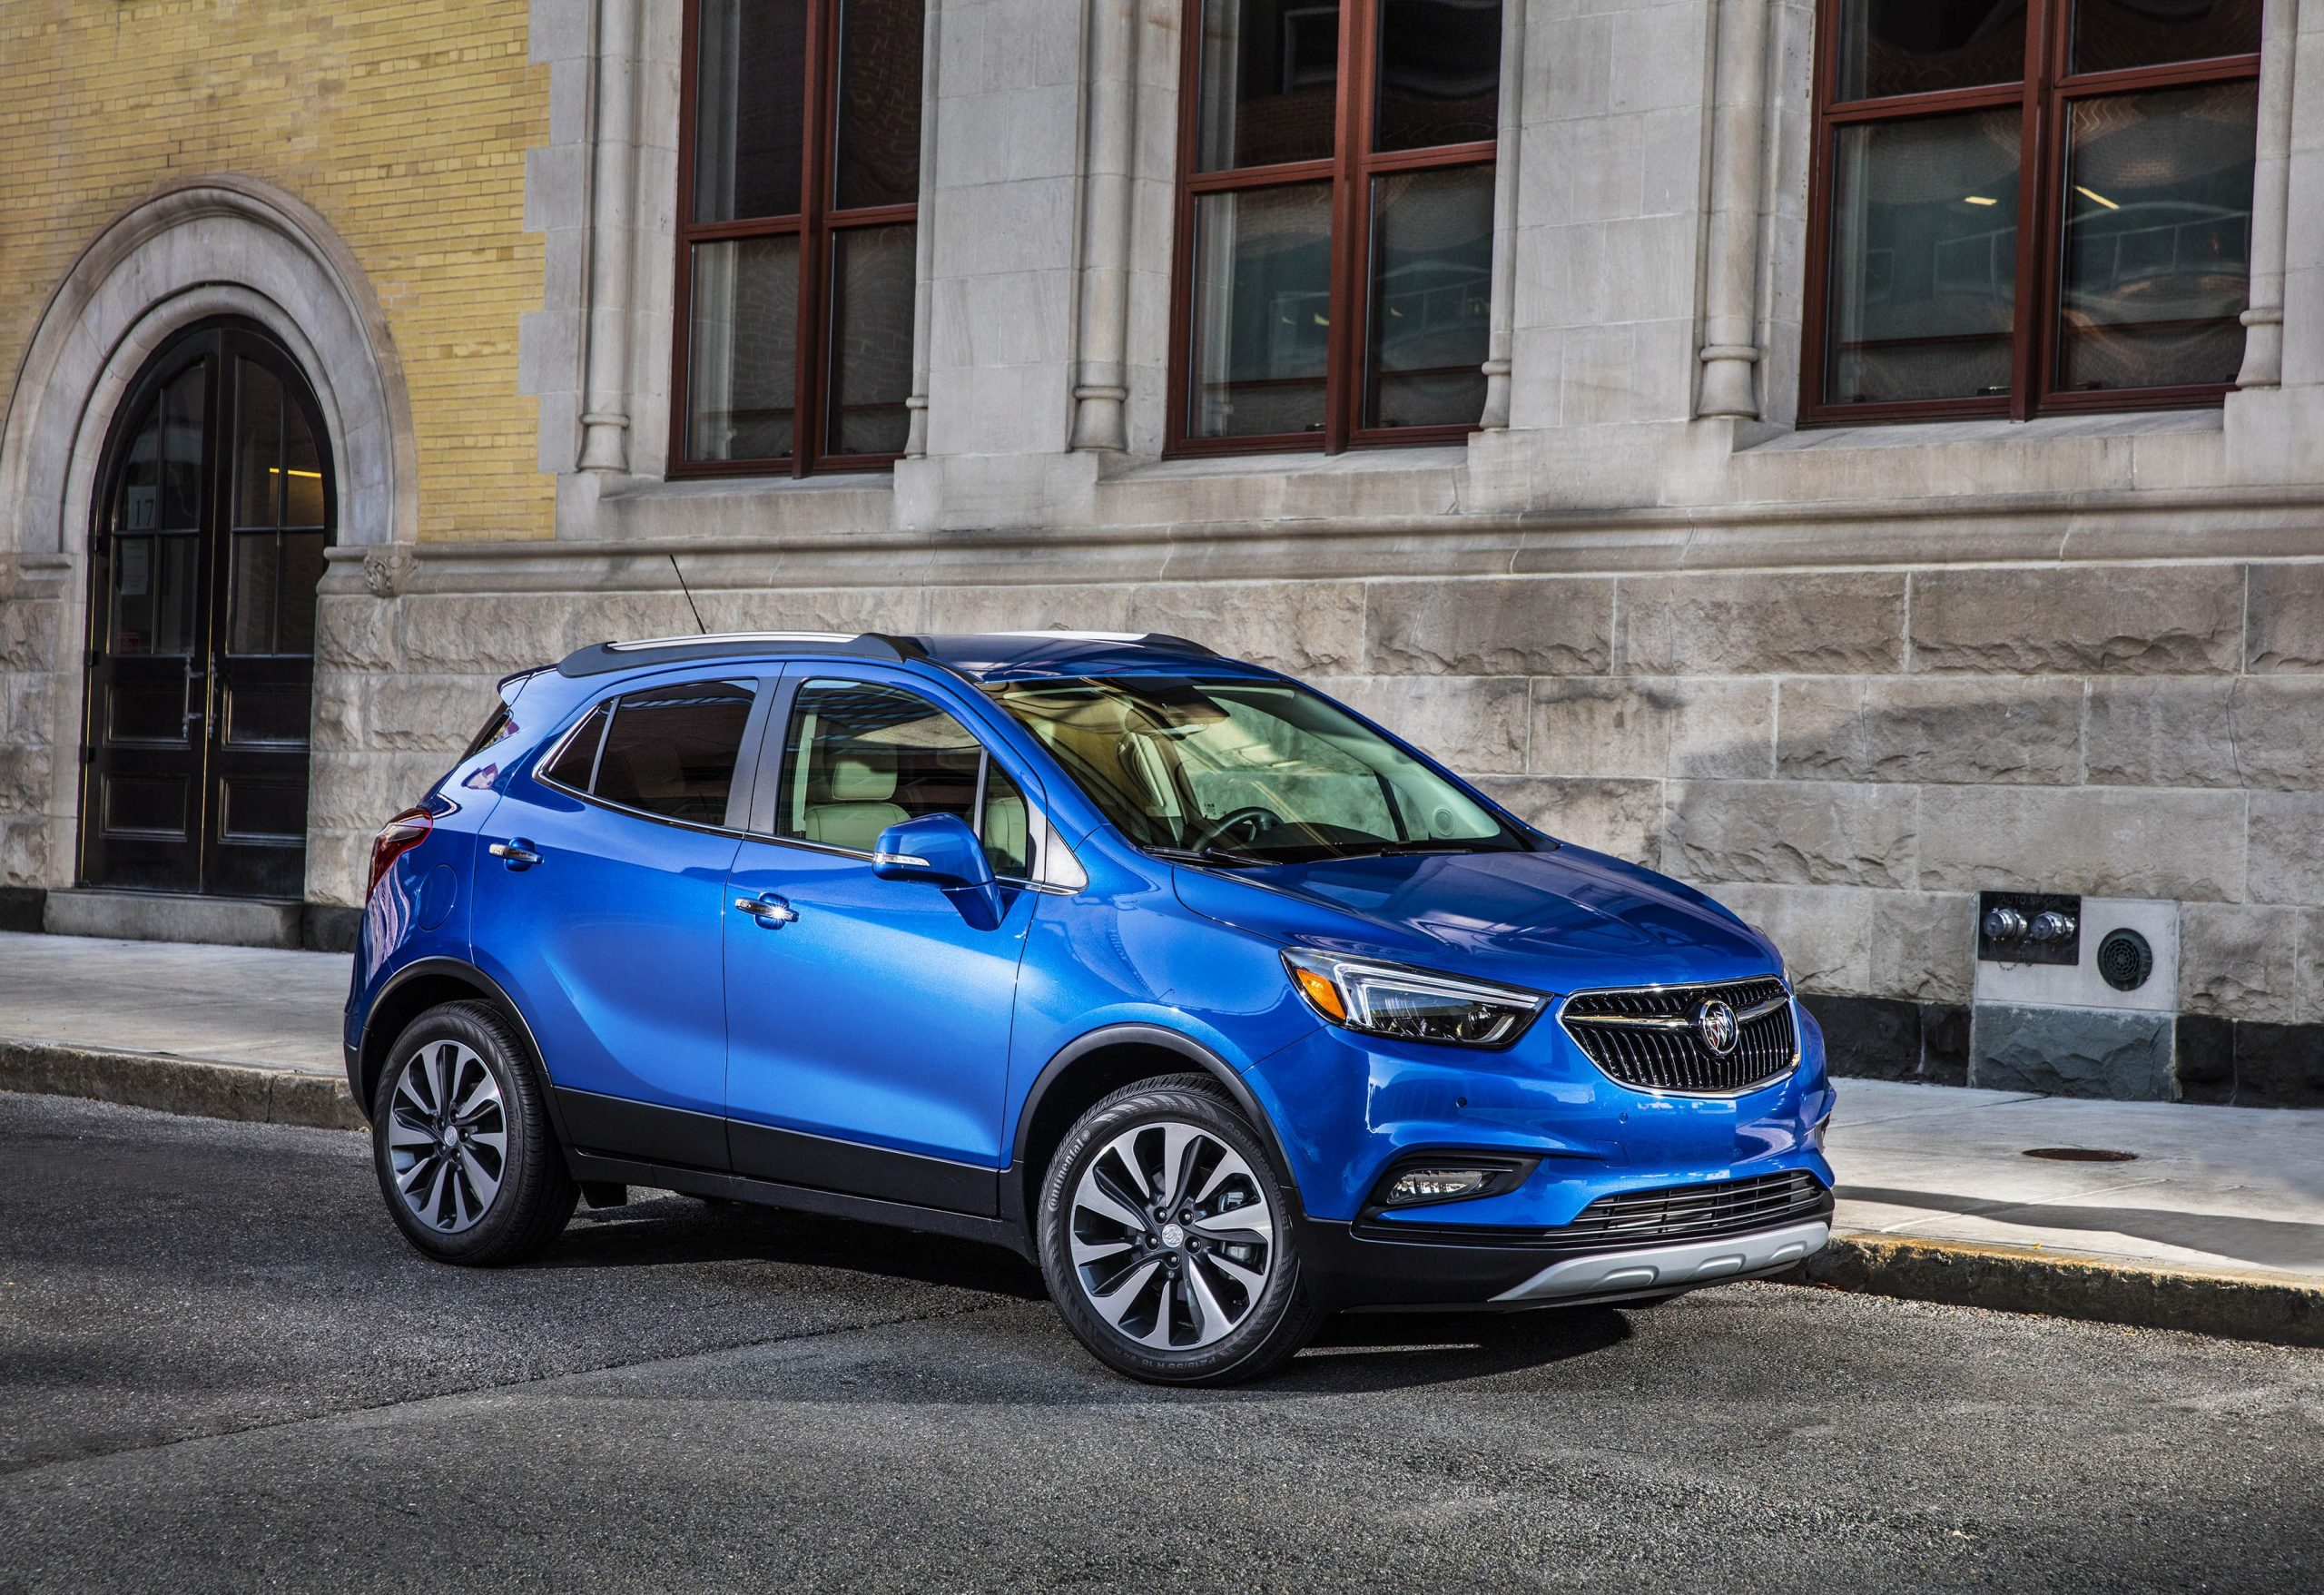 2020 Buick Encore Review, Pricing, And Specs 2022 Buick Encore Lease, Price, Brochure